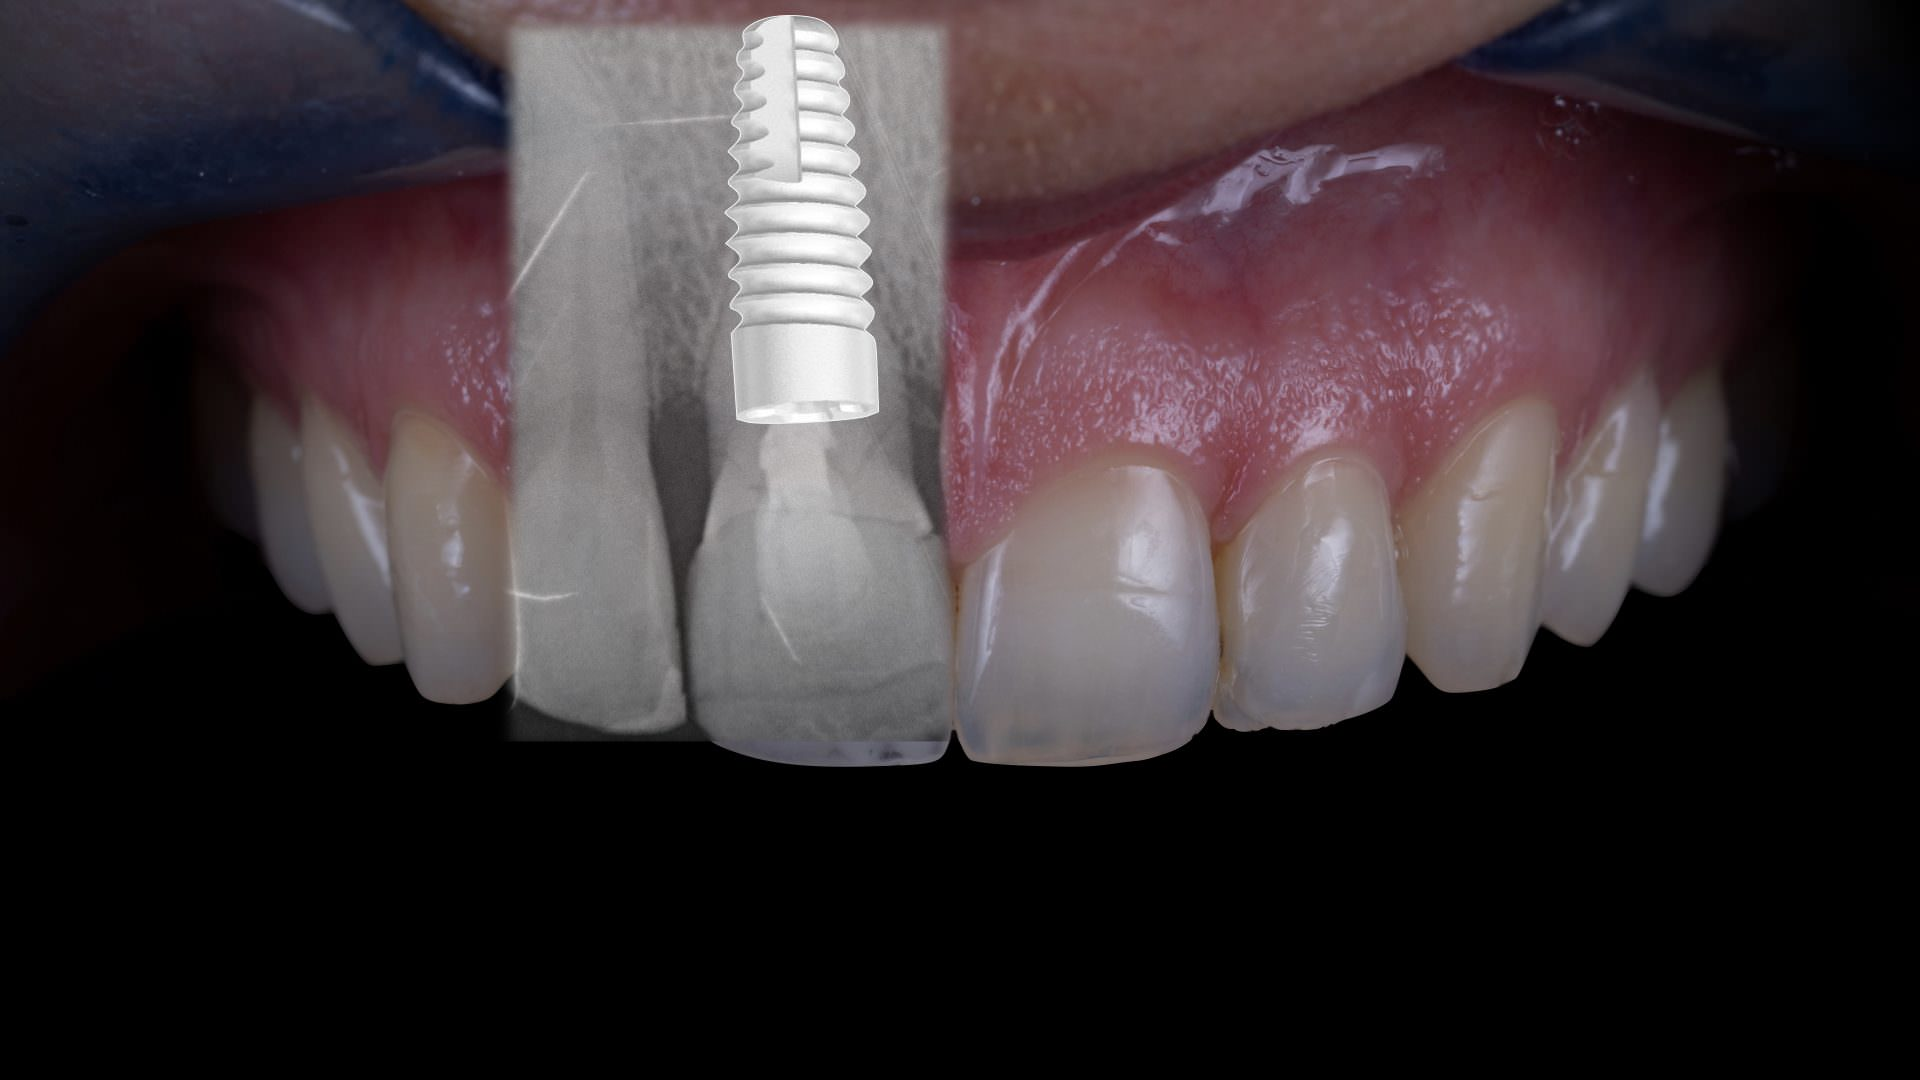 Two stage implantation with the Nobel Biocare Dental Implant